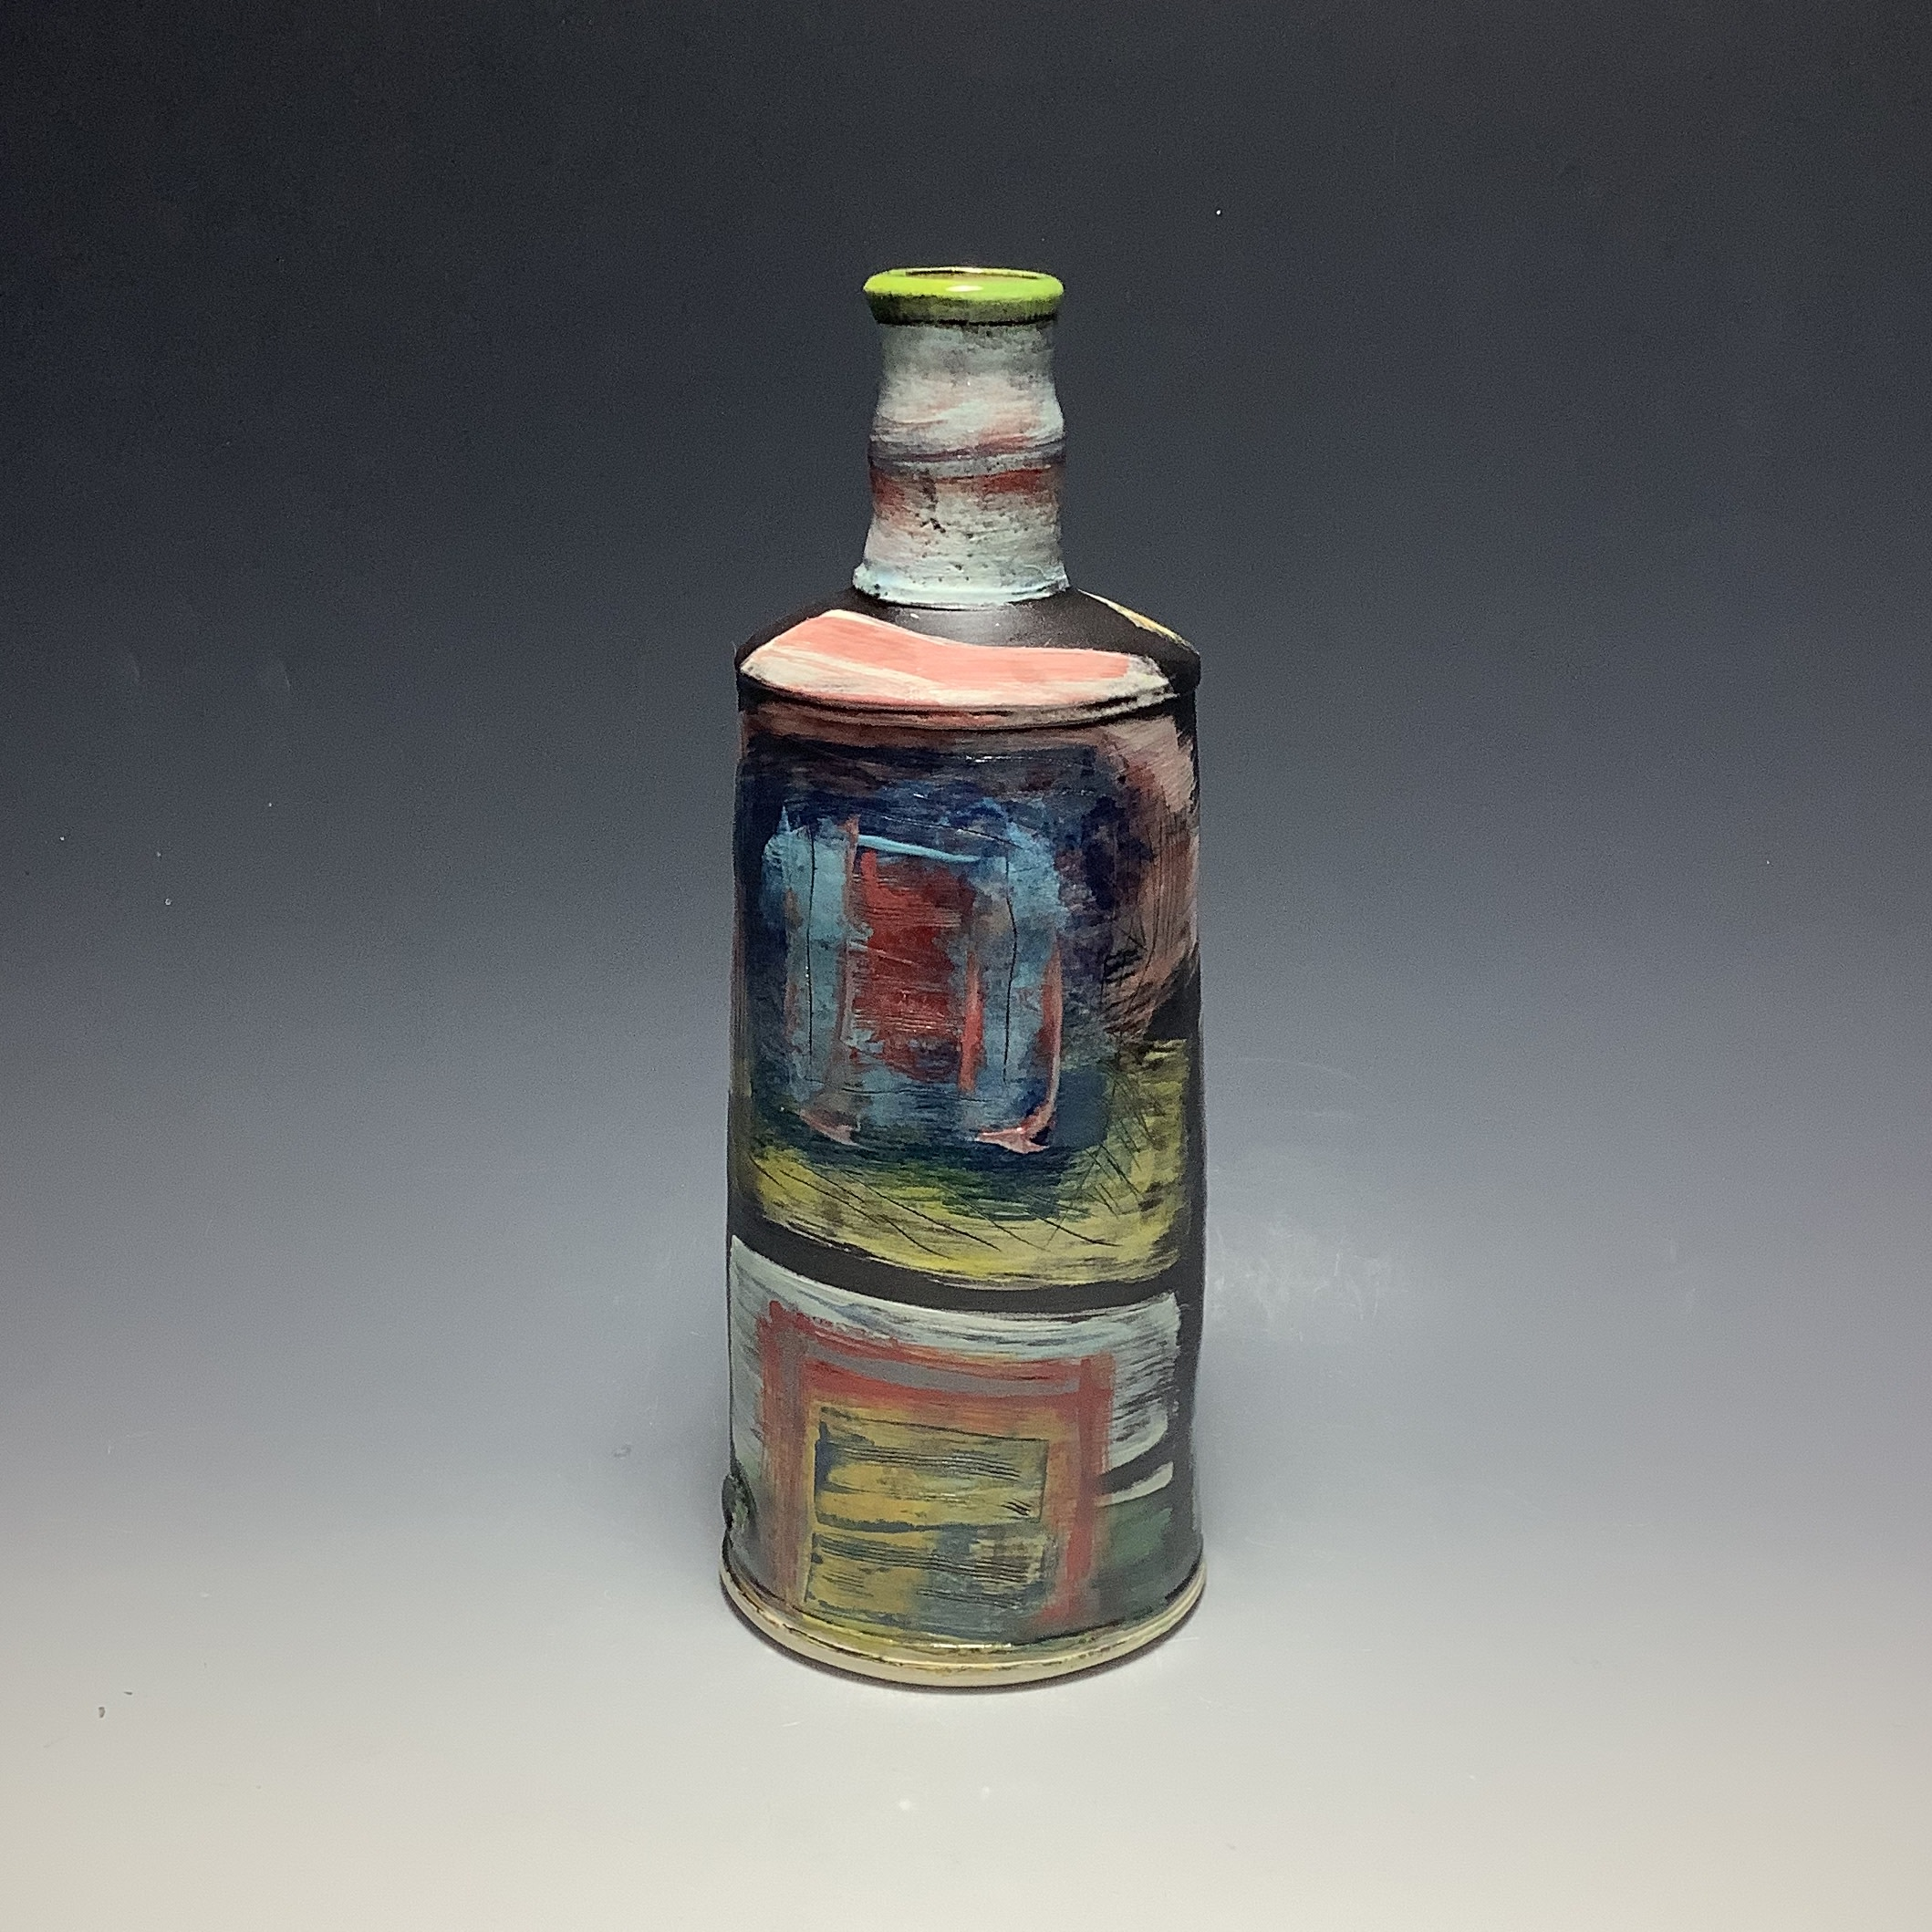 "<span class=""link fancybox-details-link""><a href=""/artists/100-john-pollex/works/6836-john-pollex-tall-bottle-2020/"">View Detail Page</a></span><div class=""artist""><strong>John Pollex</strong></div> b. 1941 <div class=""title""><em>Tall Bottle</em>, 2020</div> <div class=""signed_and_dated"">impressed with the artist's seal mark 'JP'</div> <div class=""medium"">white earthenware decorated with coloured slips</div> <div class=""dimensions"">h. 11 in</div><div class=""price"">£308.00</div><div class=""copyright_line"">Ownart: £30.80 x 10 Months, 0% APR</div>"